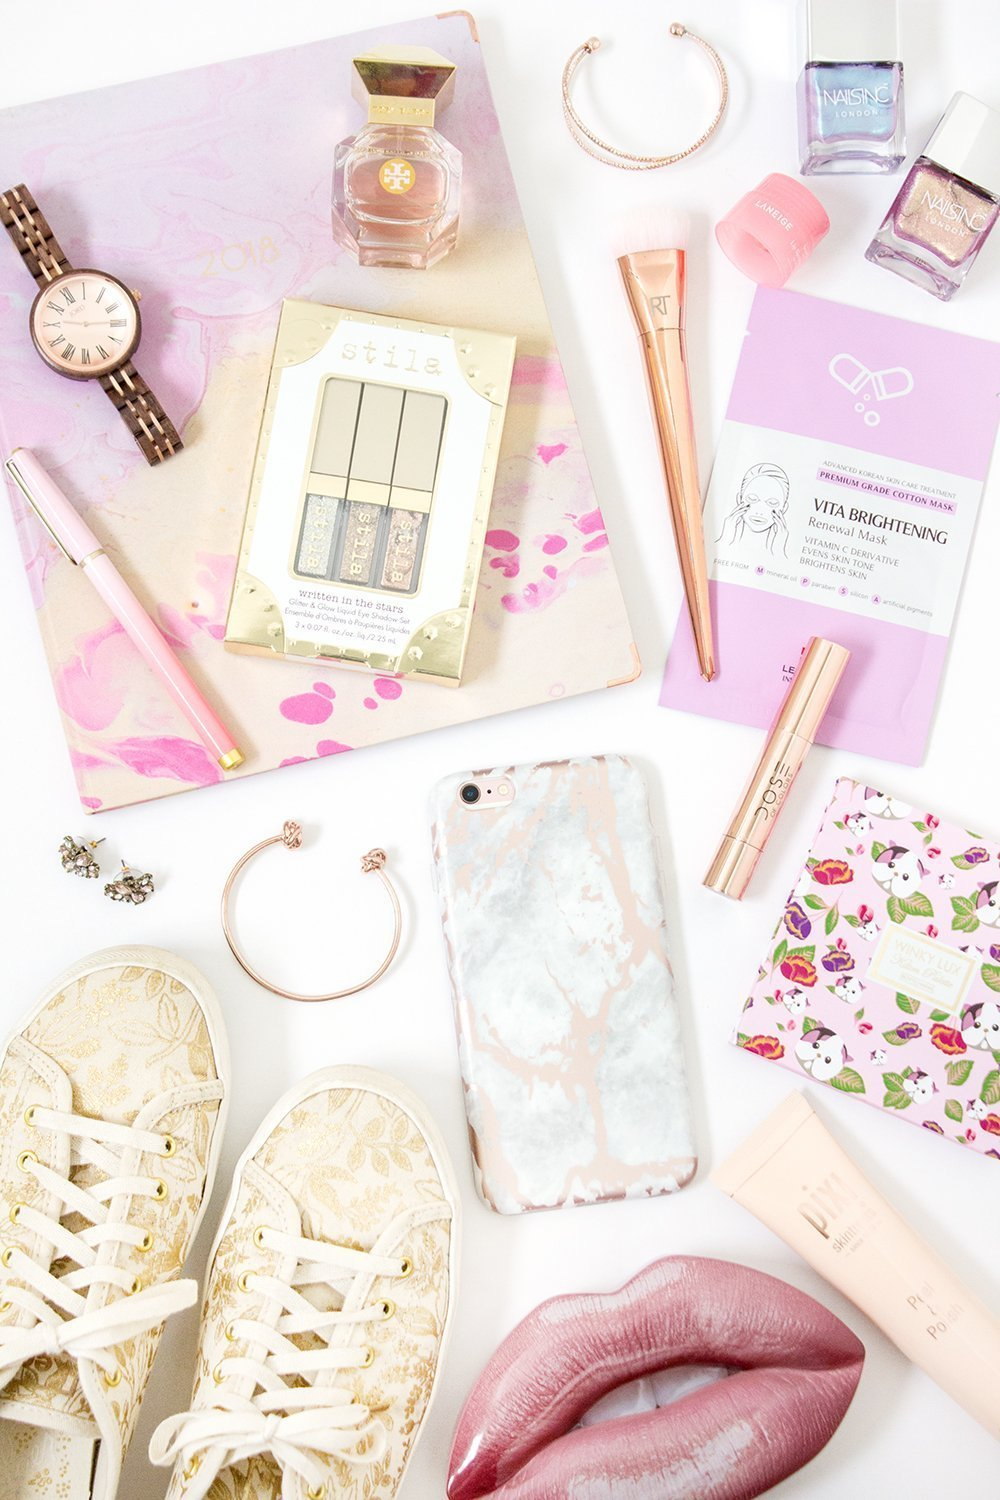 The Ultimate Girly Gift Guide: Pink & Pretty Things for